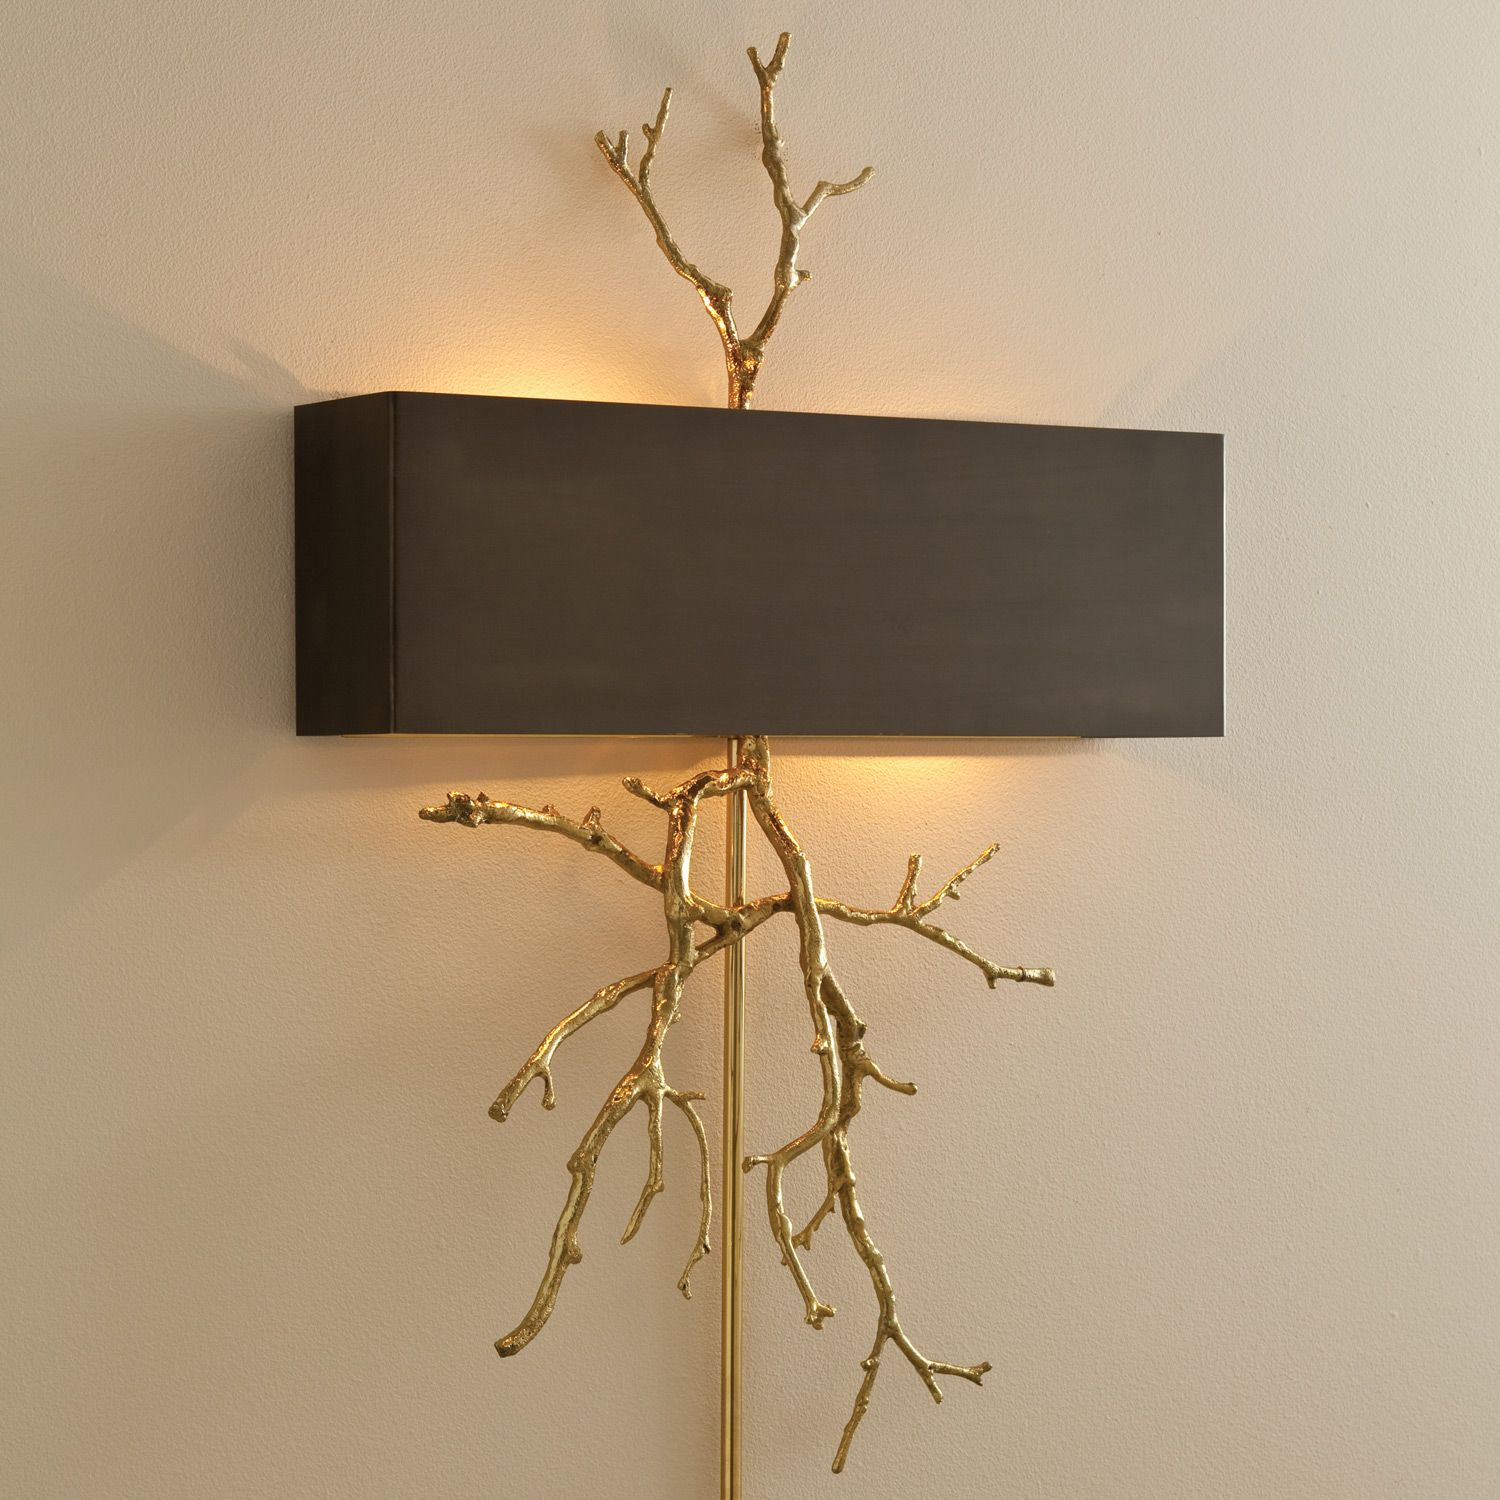 nature inspired lighting. Impeccable Quality, Attention To Detail, And The Exclusive Use Of Natural Materials Provide Global Views Products An Allure All Their Own. Nature- Inspired Nature Lighting